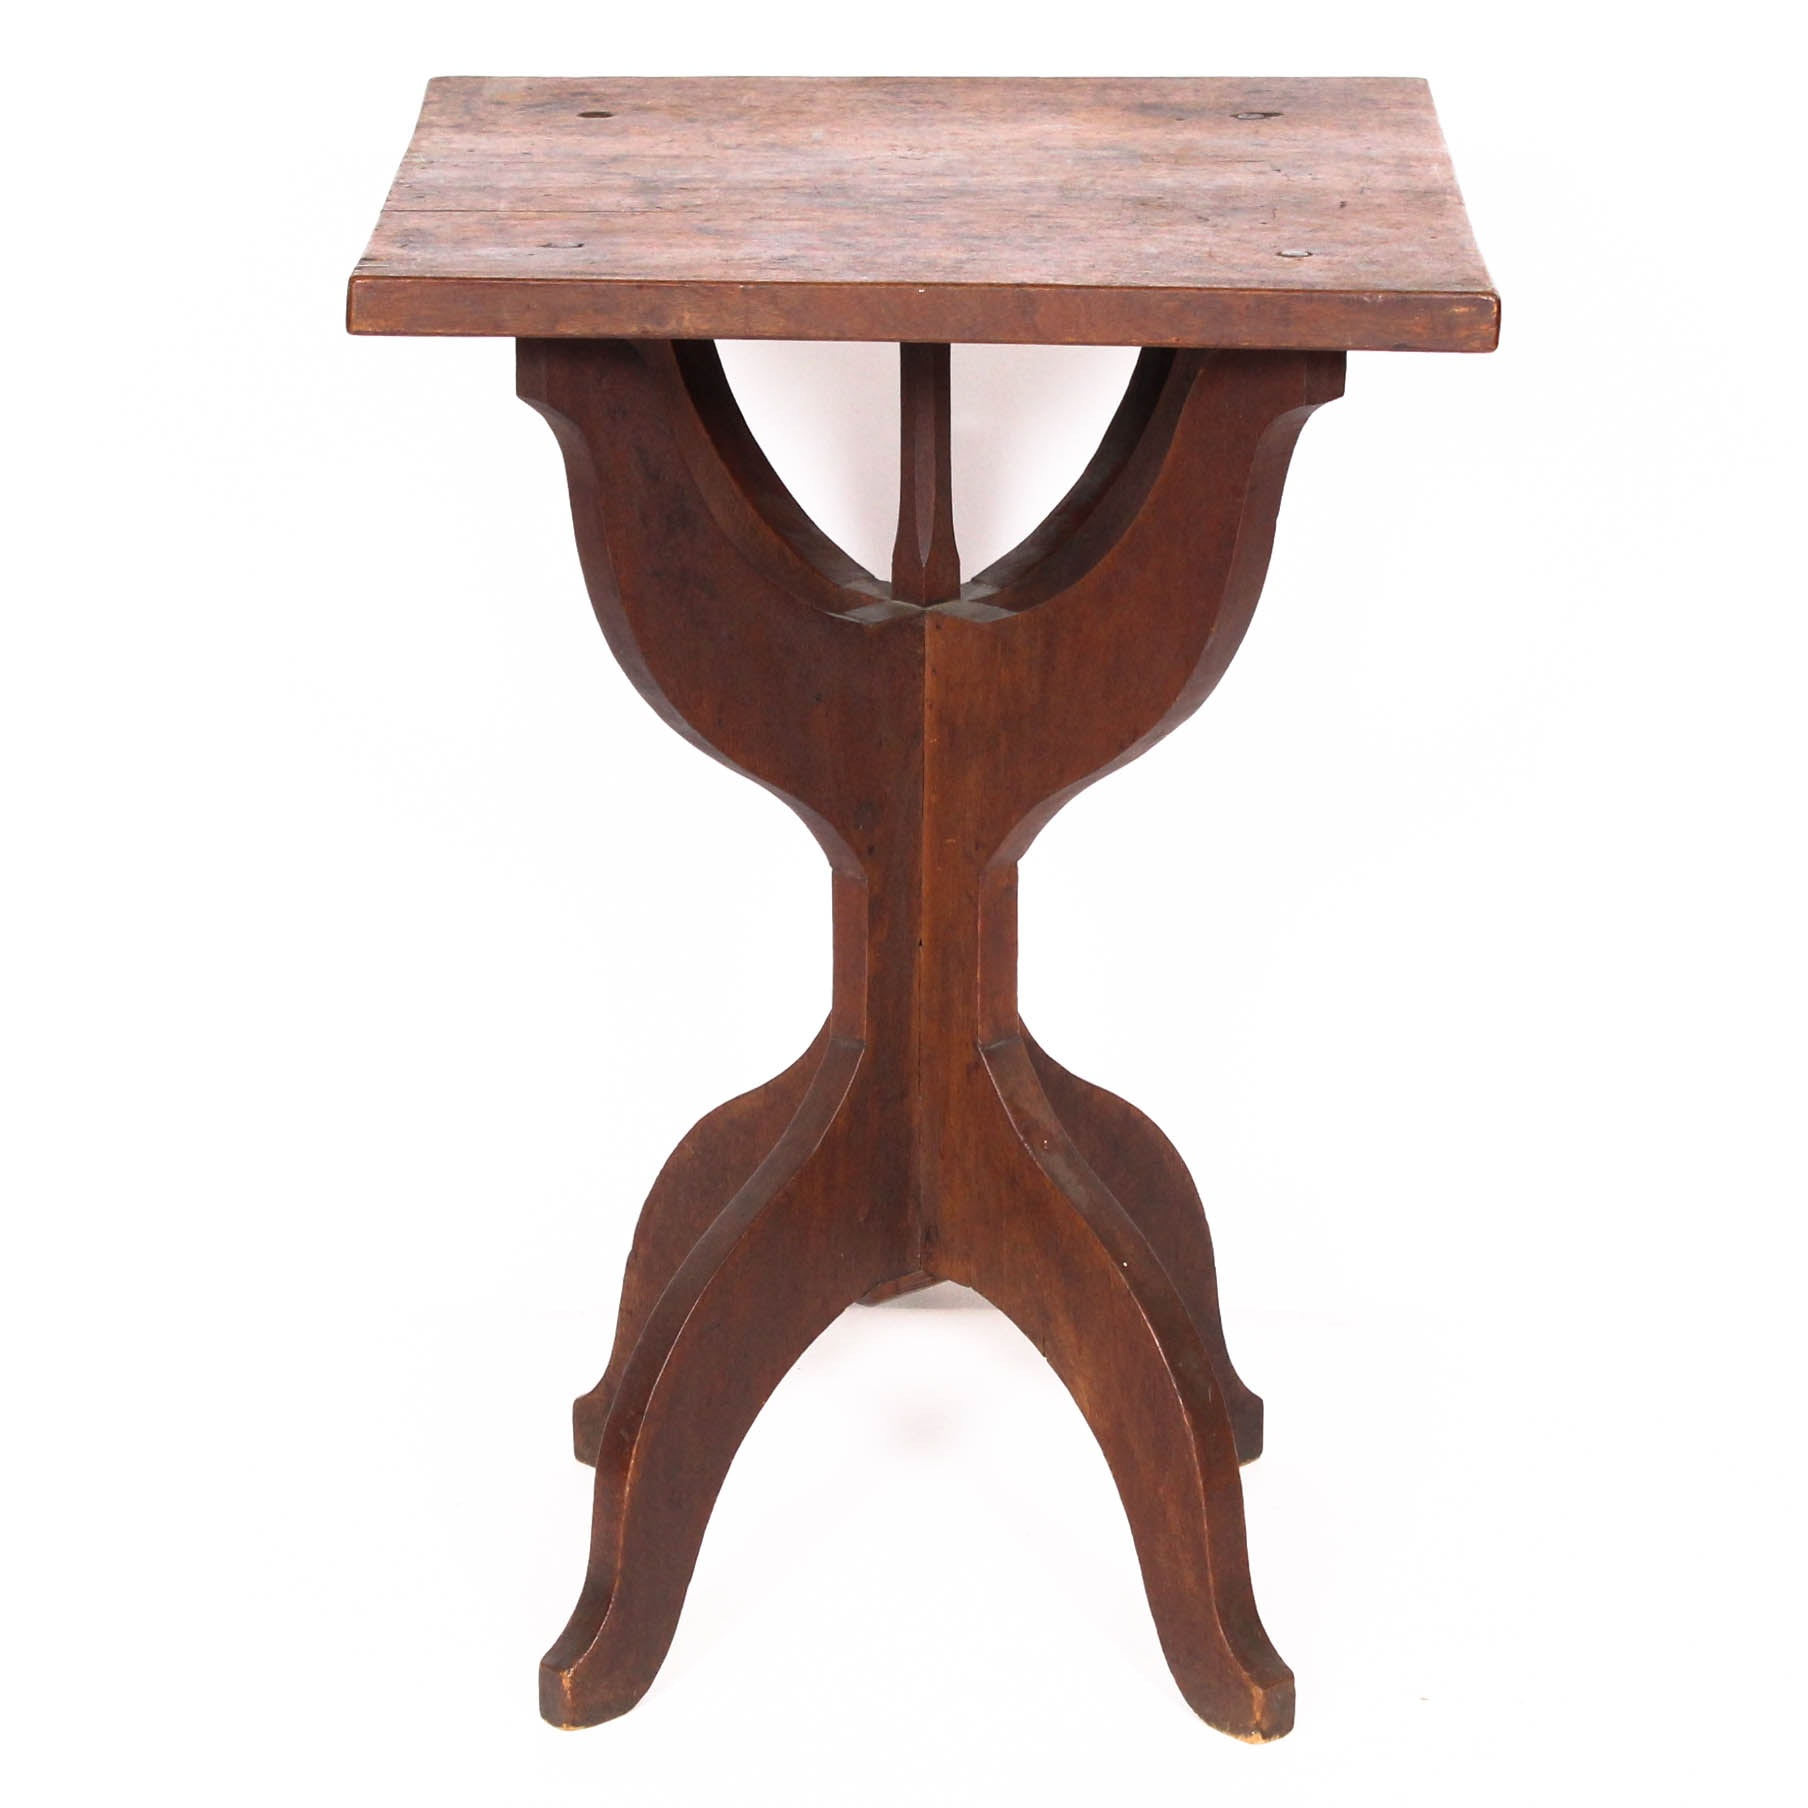 Rustic Hand-Crafted Wooden Table